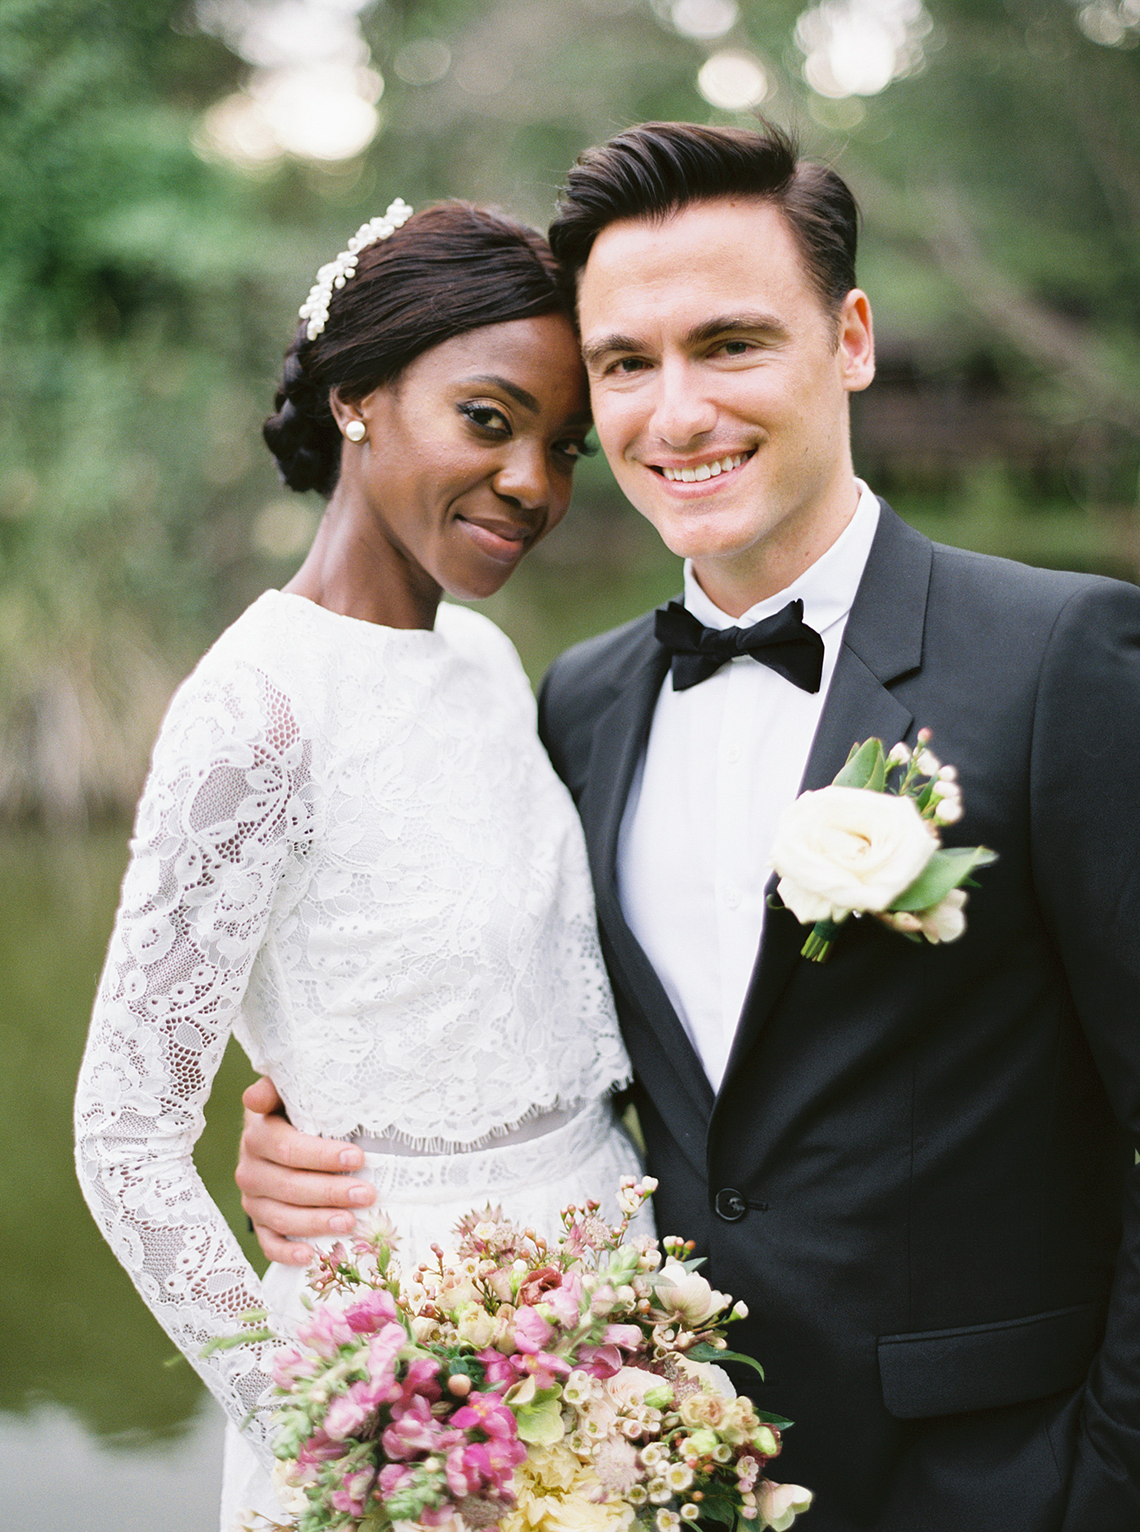 Romantic African Garden Wedding Inspiration – Kind Fisher Boma – Stepan Vrzala – Love From Mwai 23